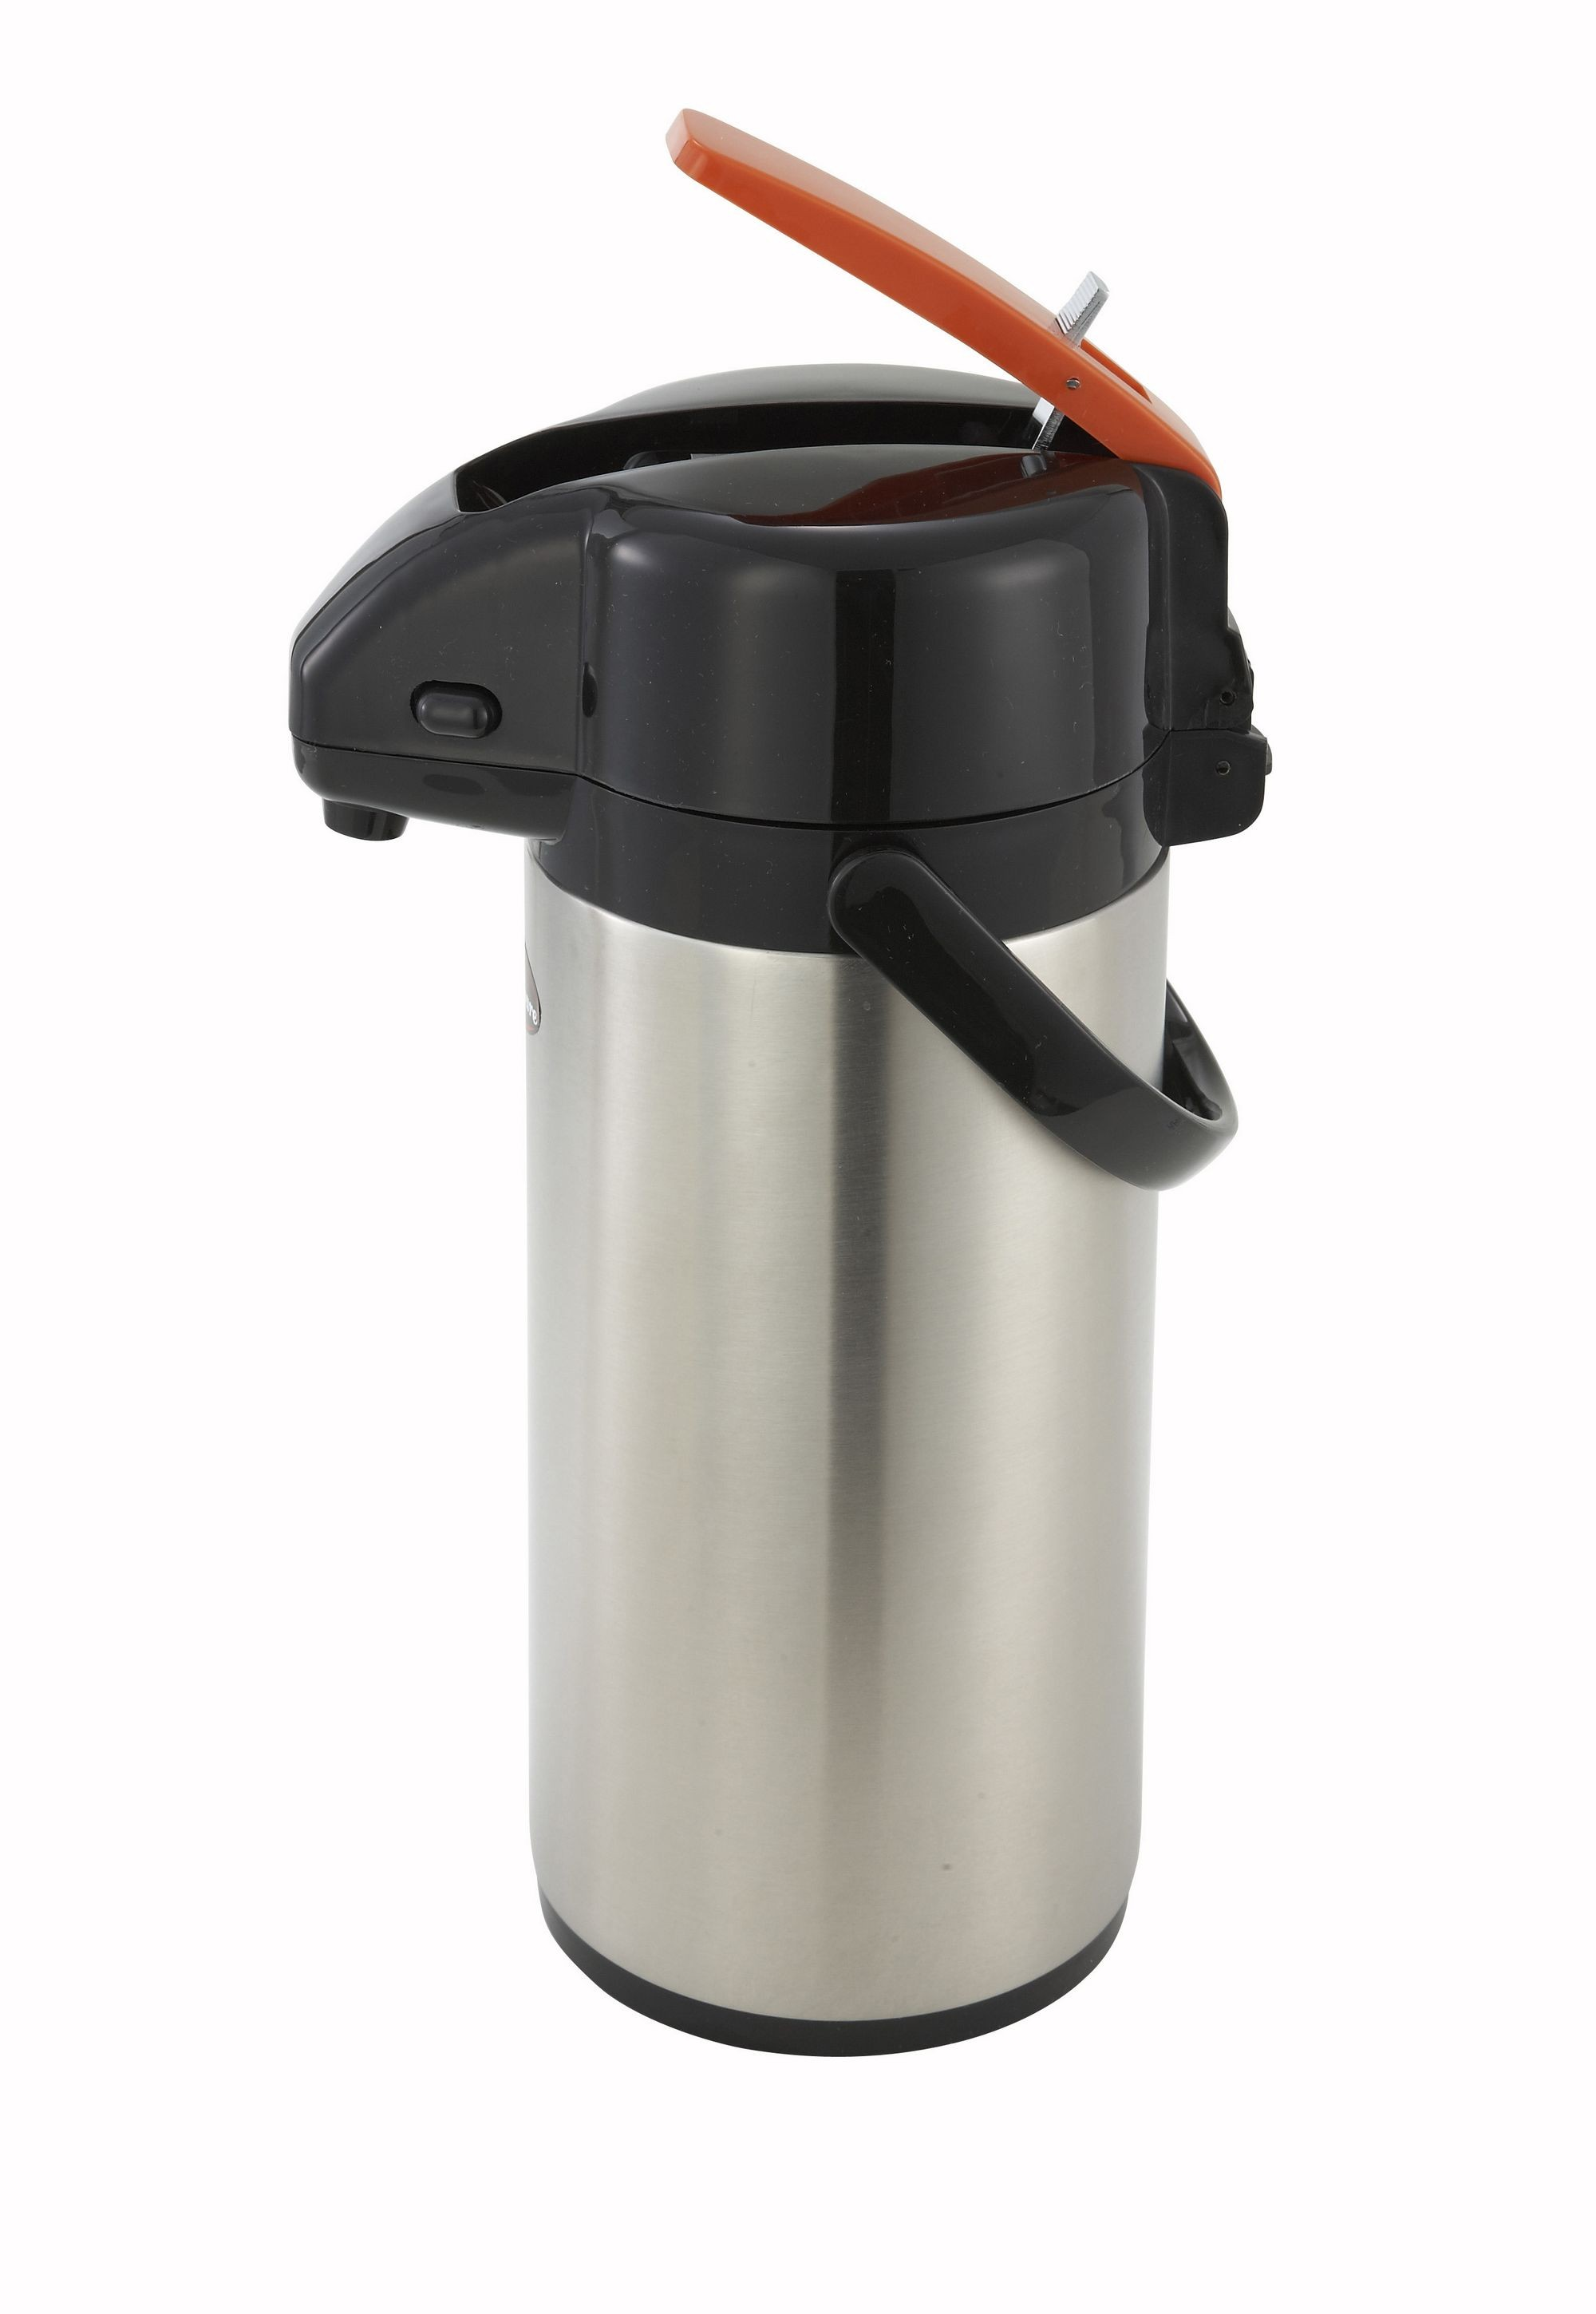 Winco APSK-725DC Stainless Steel Lined Decaf Airpot with Lever Top 2.5 Liter